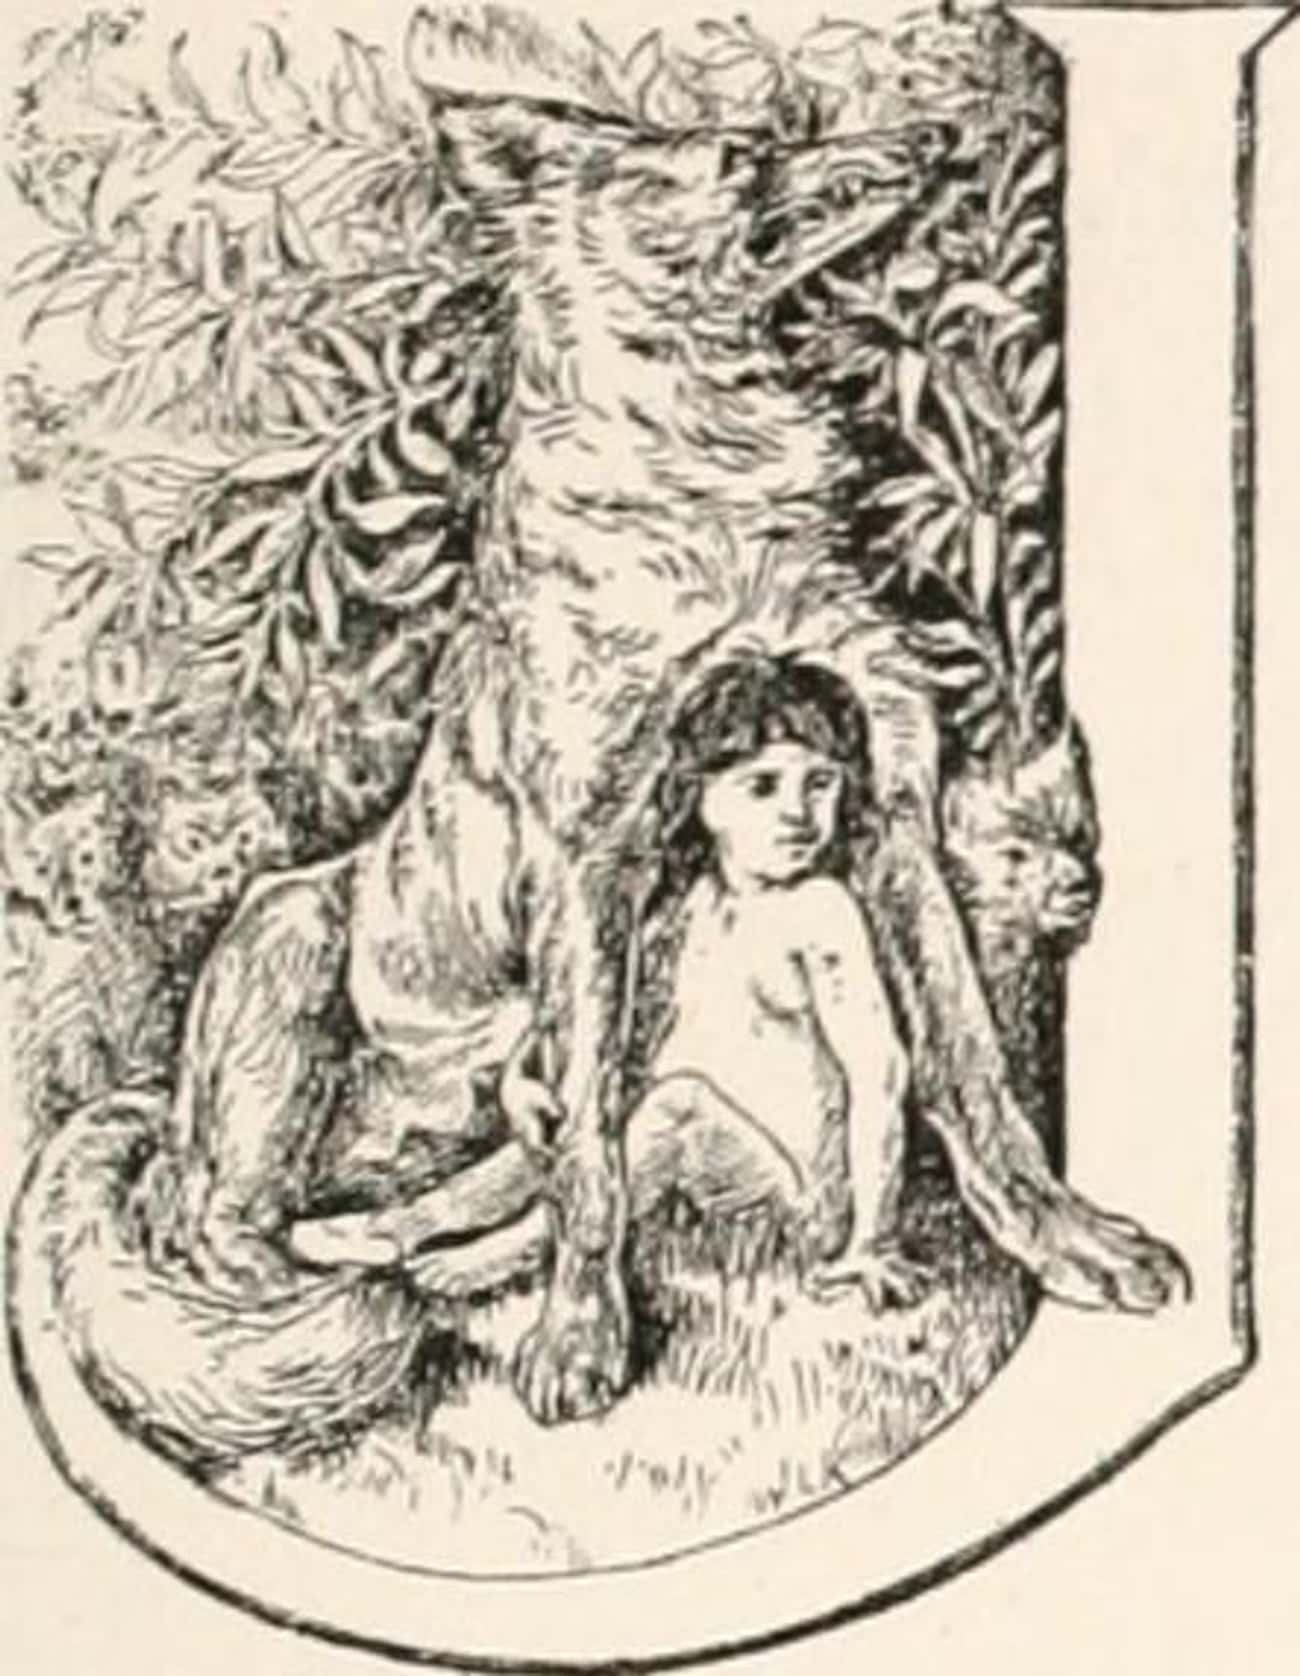 He Never Learned To Speak Or W is listed (or ranked) 3 on the list The Real-Life Inspiration For Mowgli In The Jungle Book Was A Feral Child Raised By Wolves